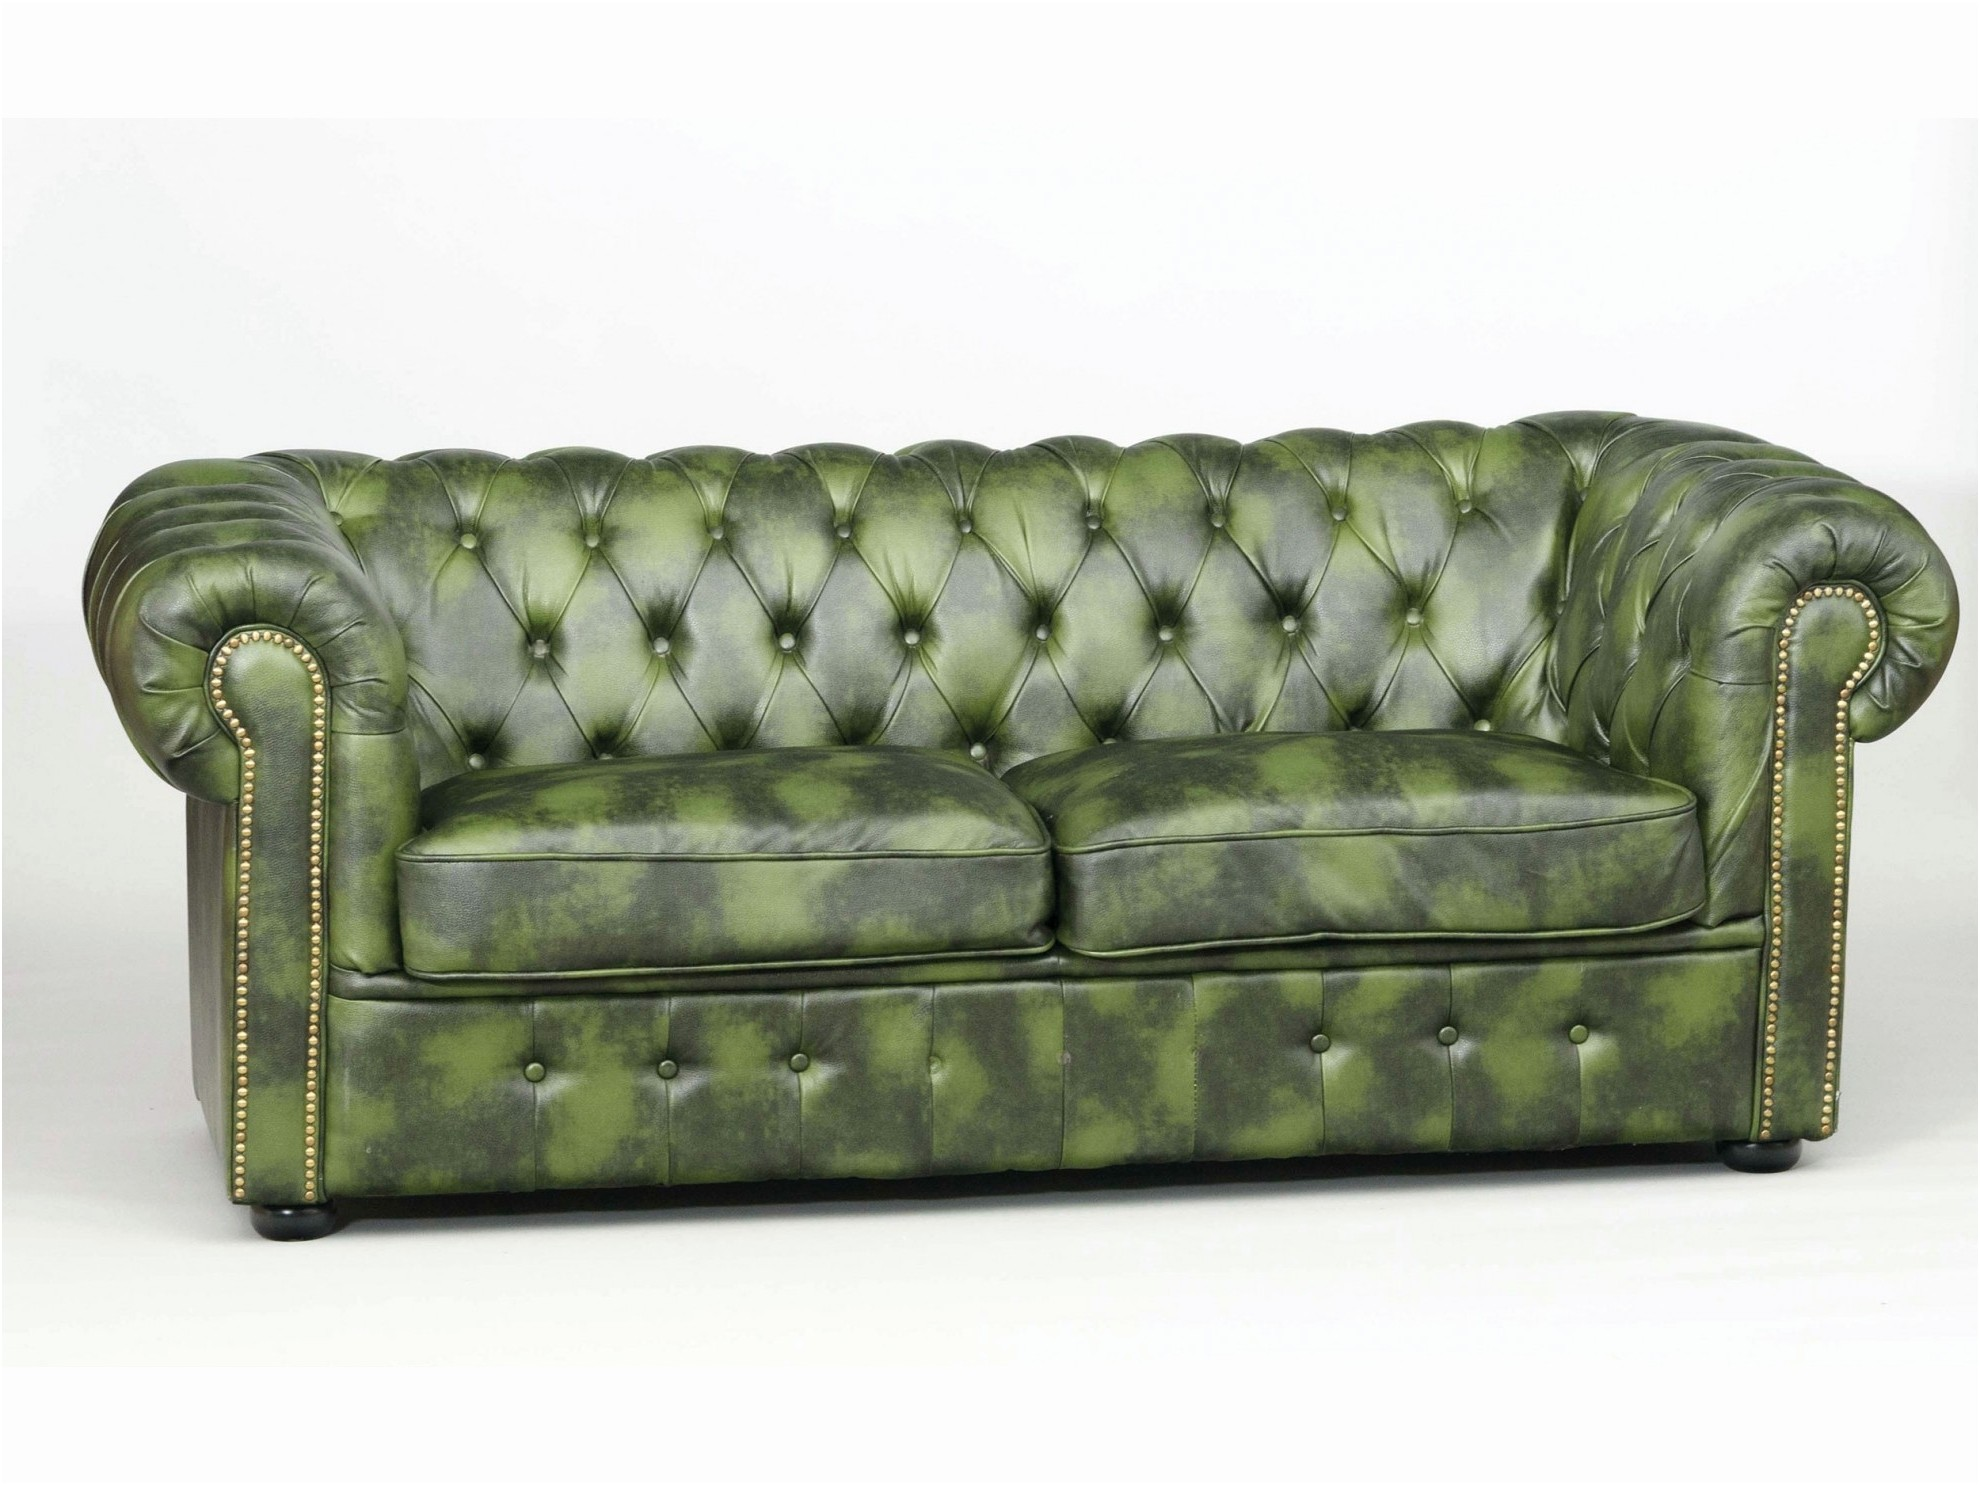 Sofa En Ingles Wonderful sofa En Ingles Image